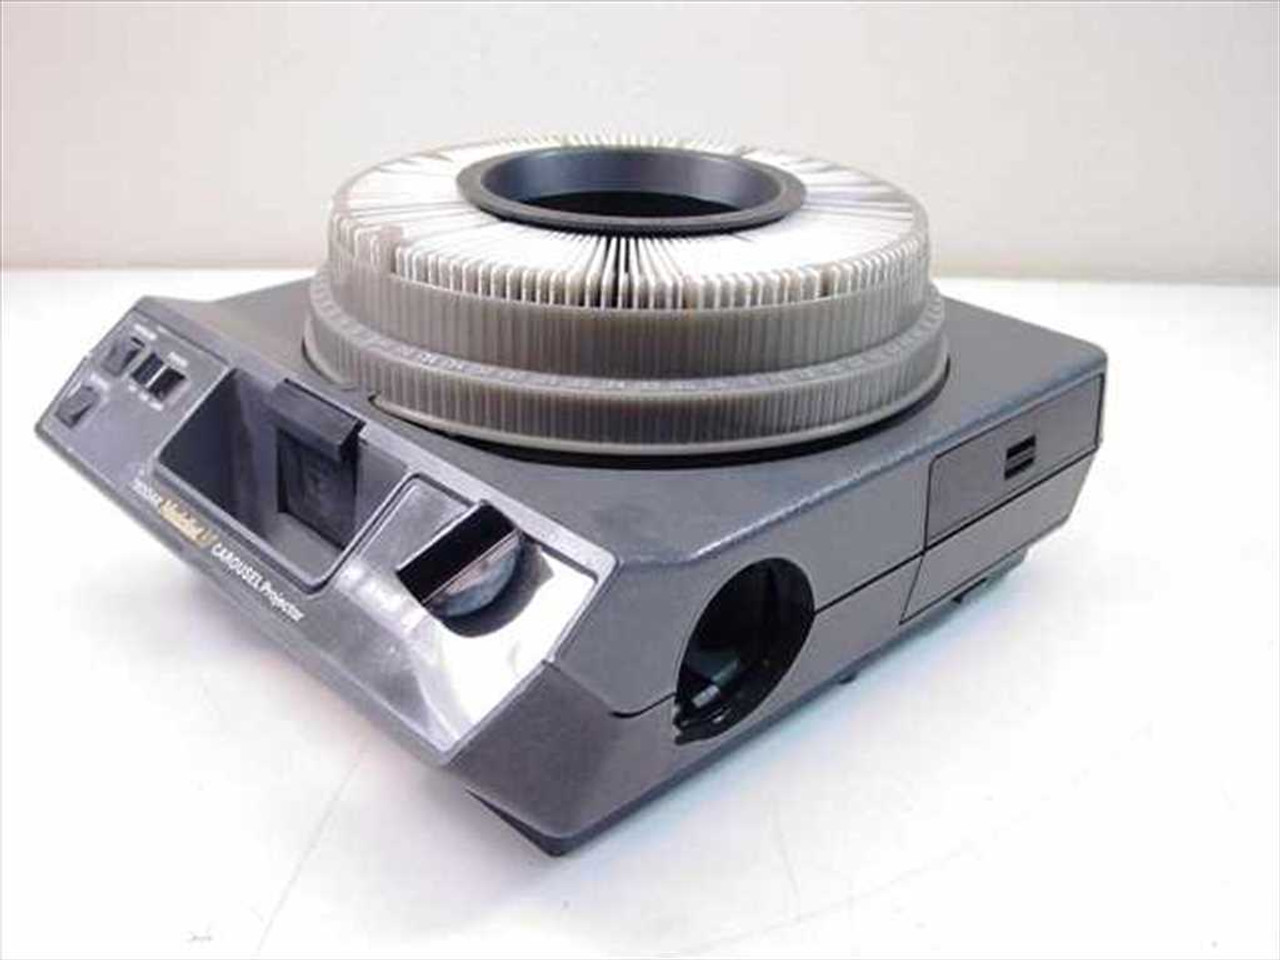 kodak carousel slide projector instructions